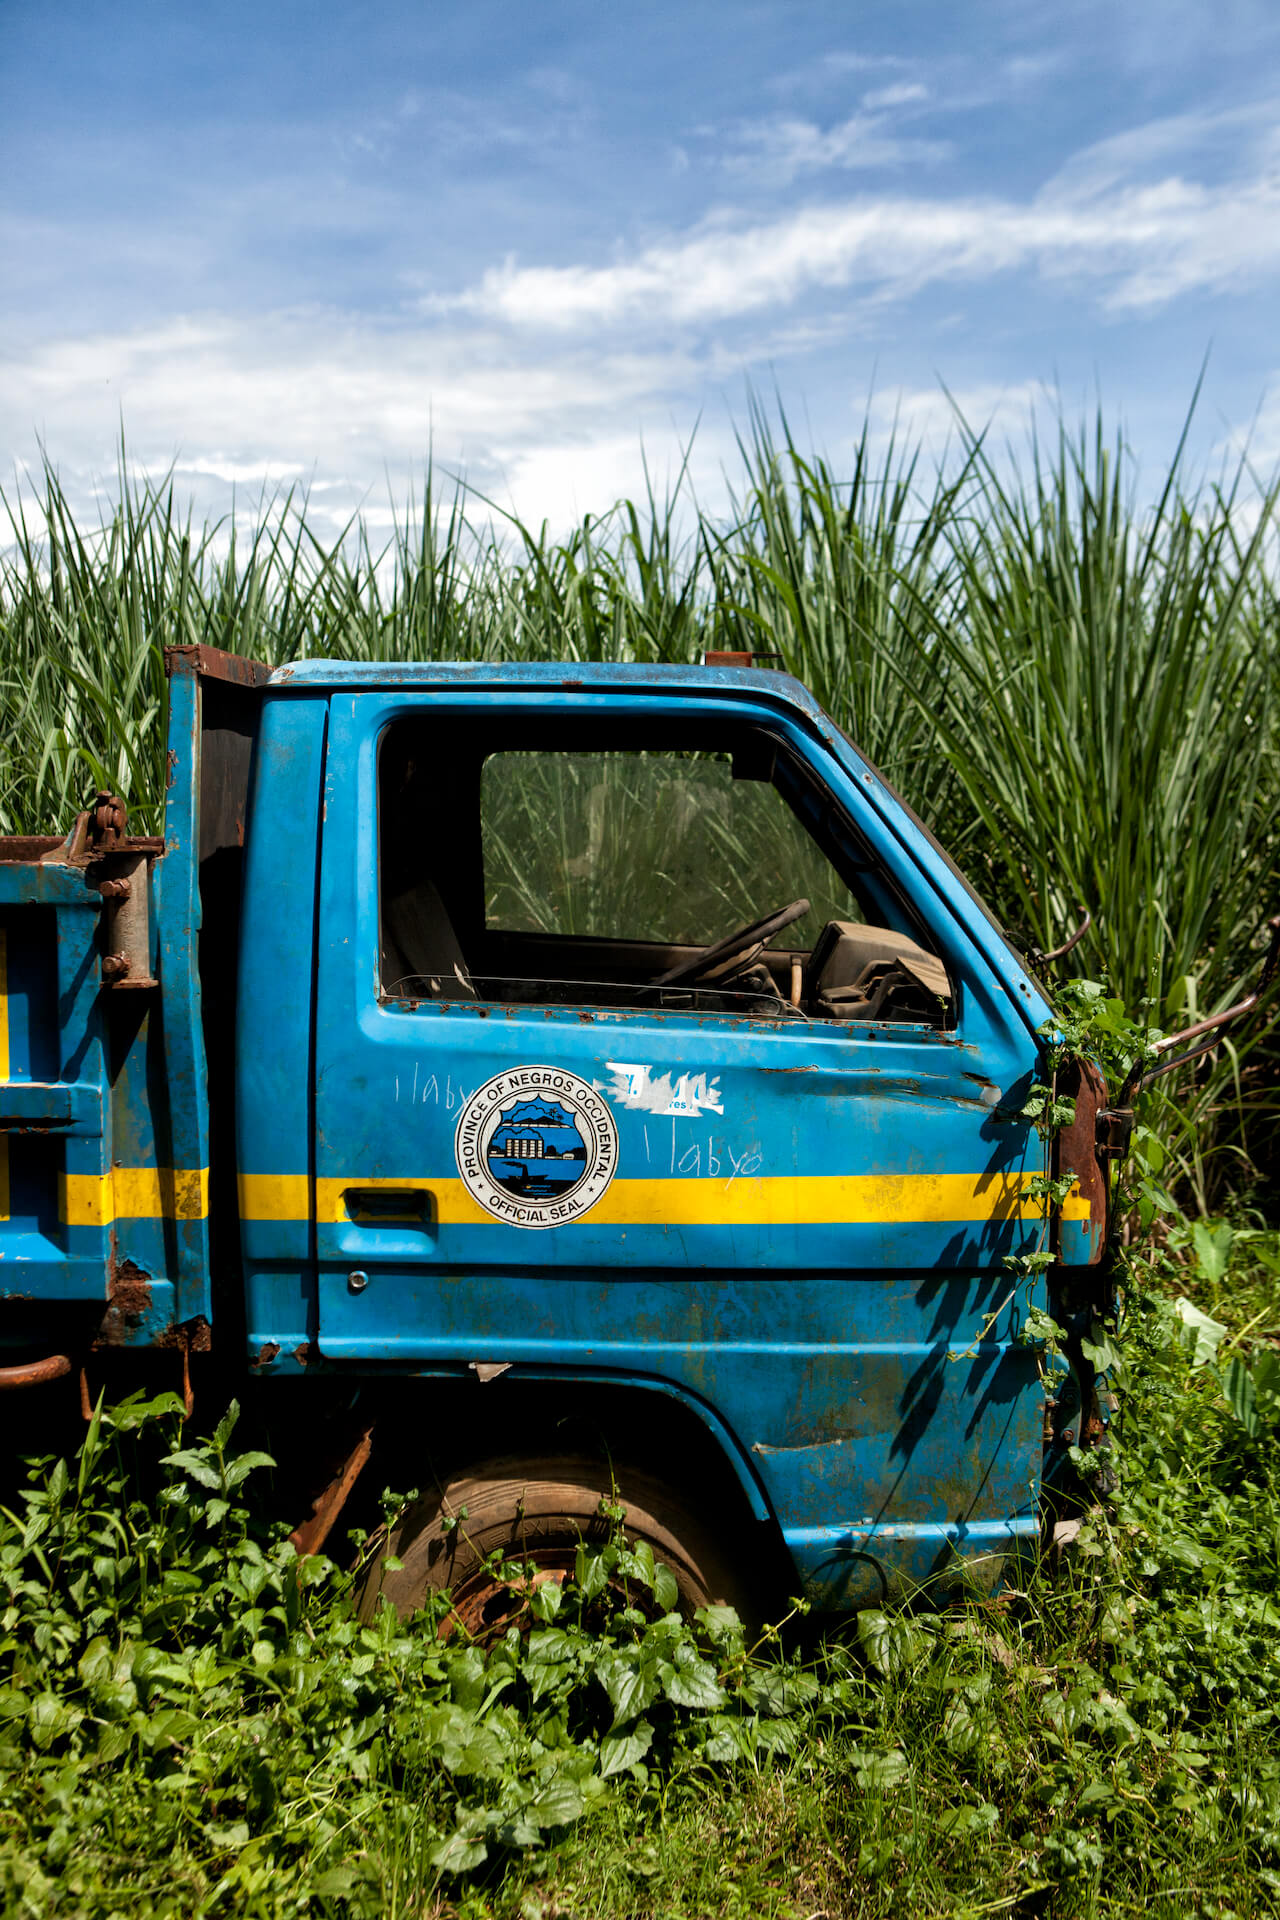 Truck with the official Negros Occidental seal